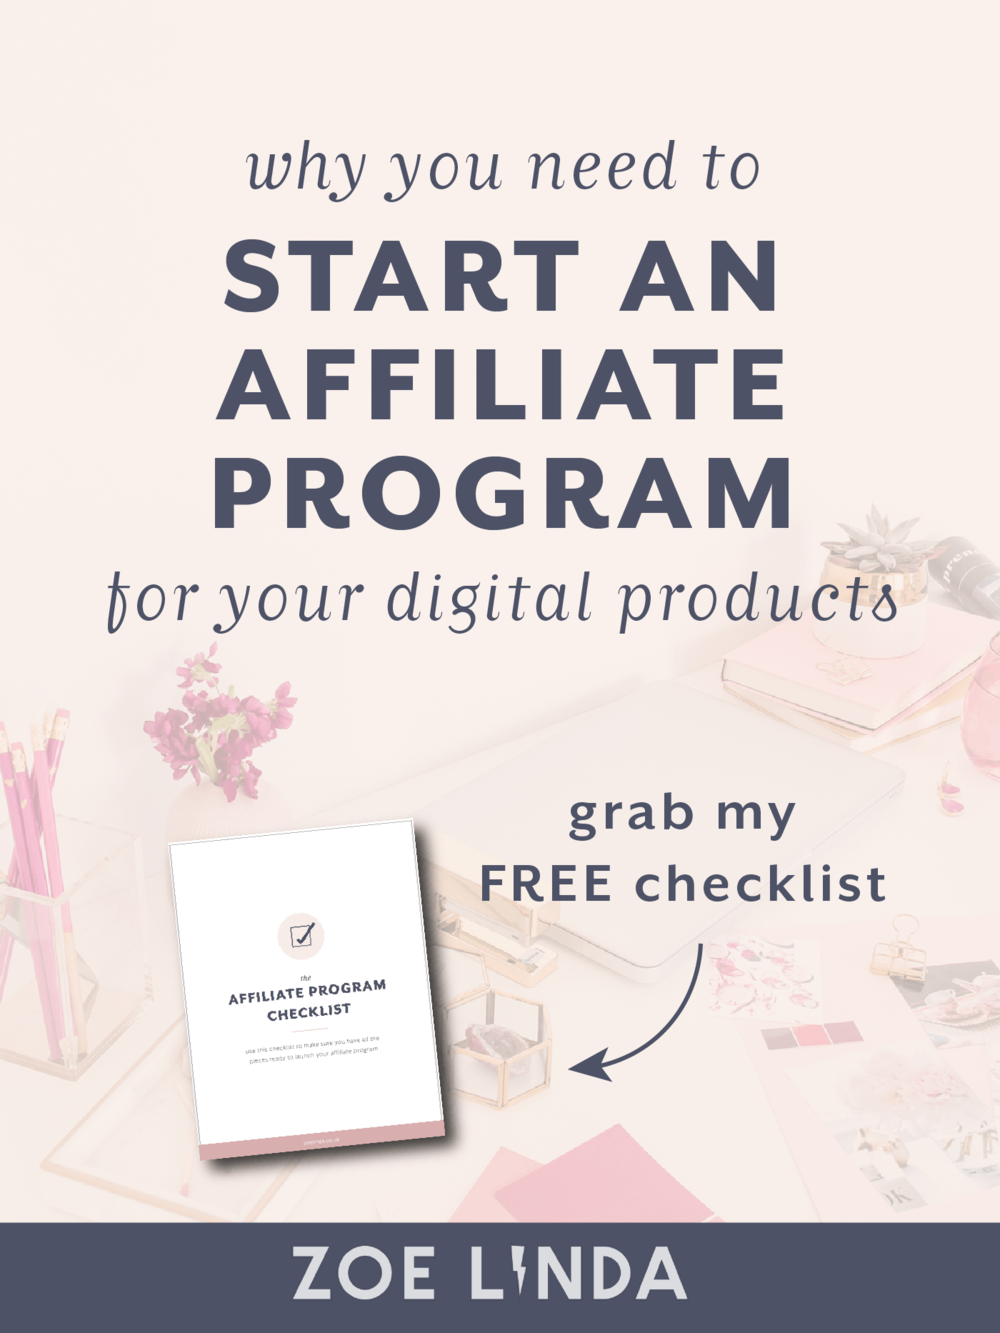 Why You Need To Start An Affiliate Program For Your Digital Products | Launching a digital product is hard enough as it is without adding affiliates into the mix. Why should you bother? This blog post tells you why you should work with affiliates if you create and sell digital products, online courses, or infoproducts. This post is perfect if you're looking to create multiple revenue streams or work on your passive income!